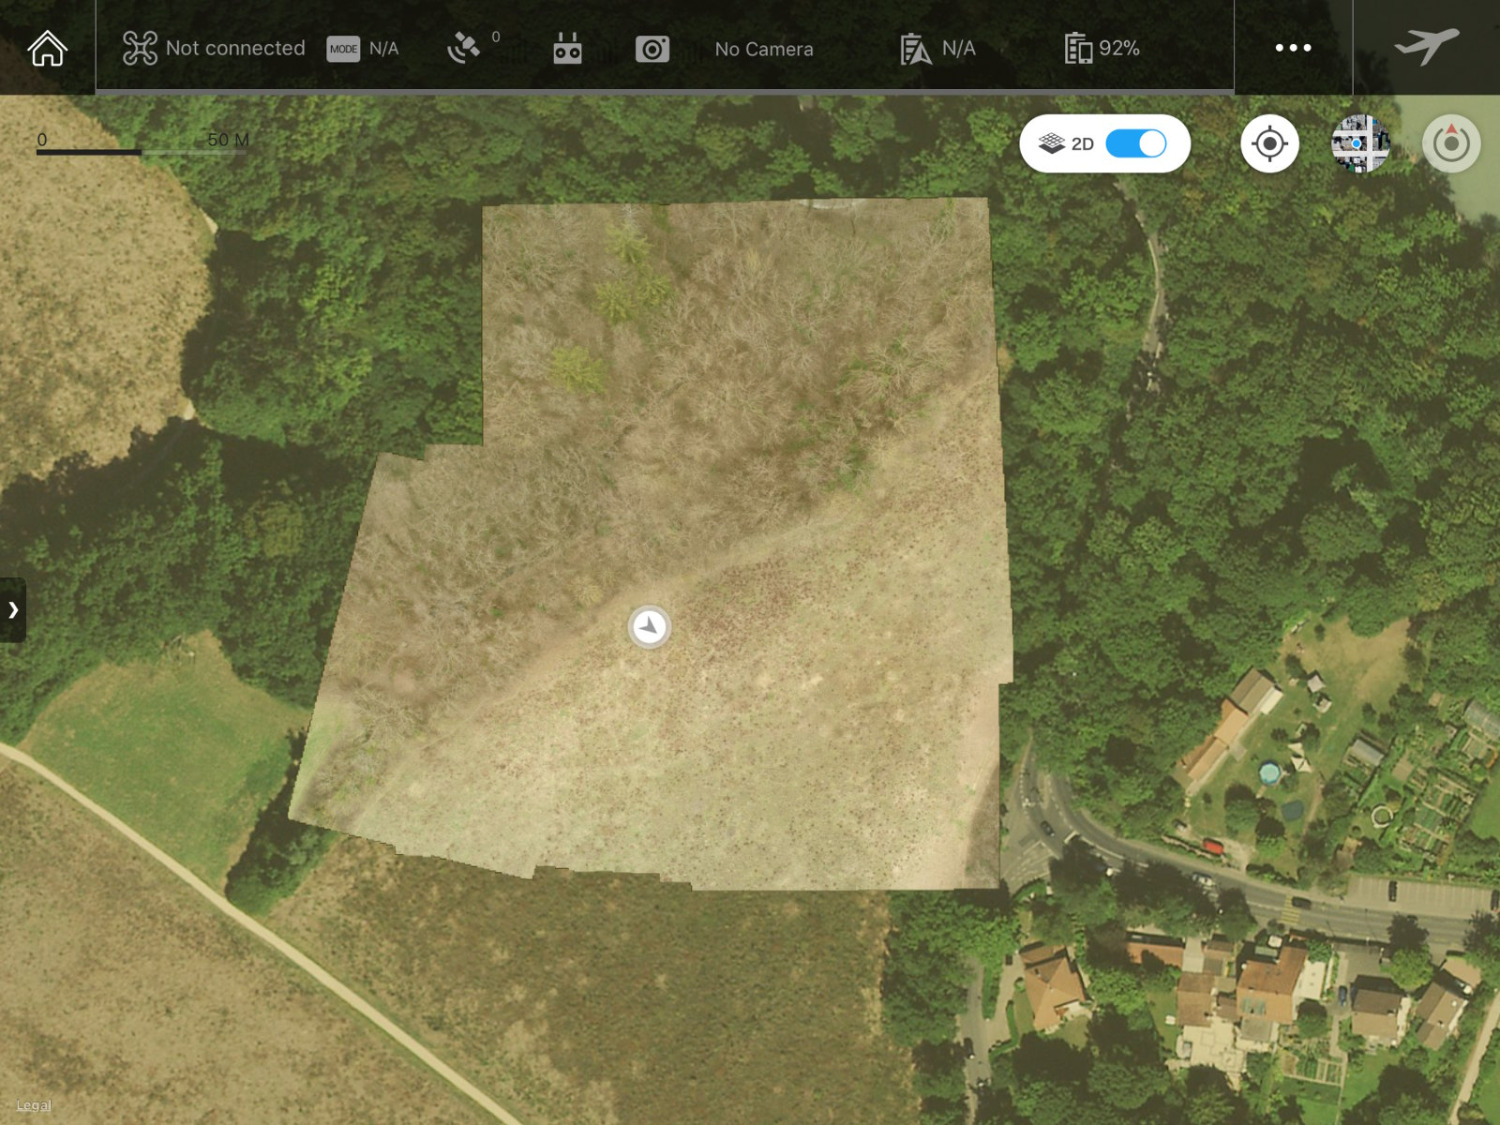 Save mission in cloud or local with DJI GS Pro   DJI FORUM